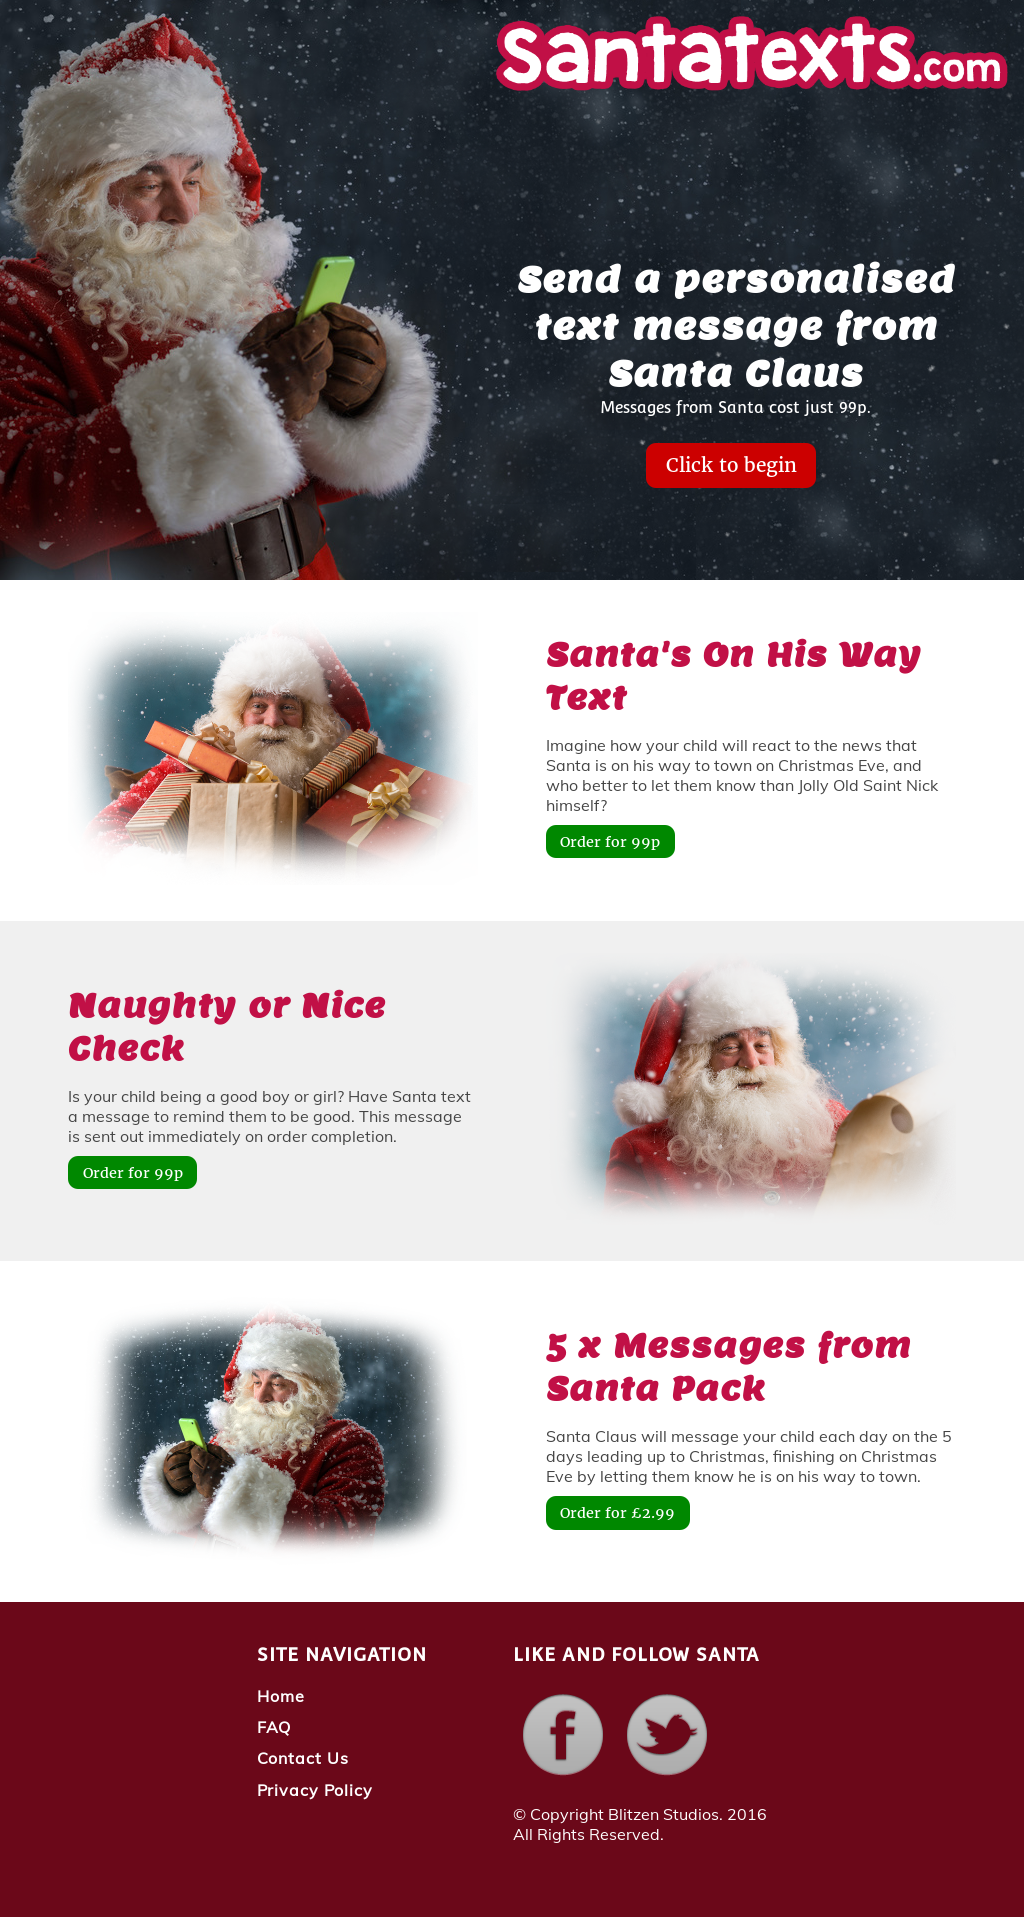 santatextscom text messages from santa claus competitors revenue and employees owler company profile